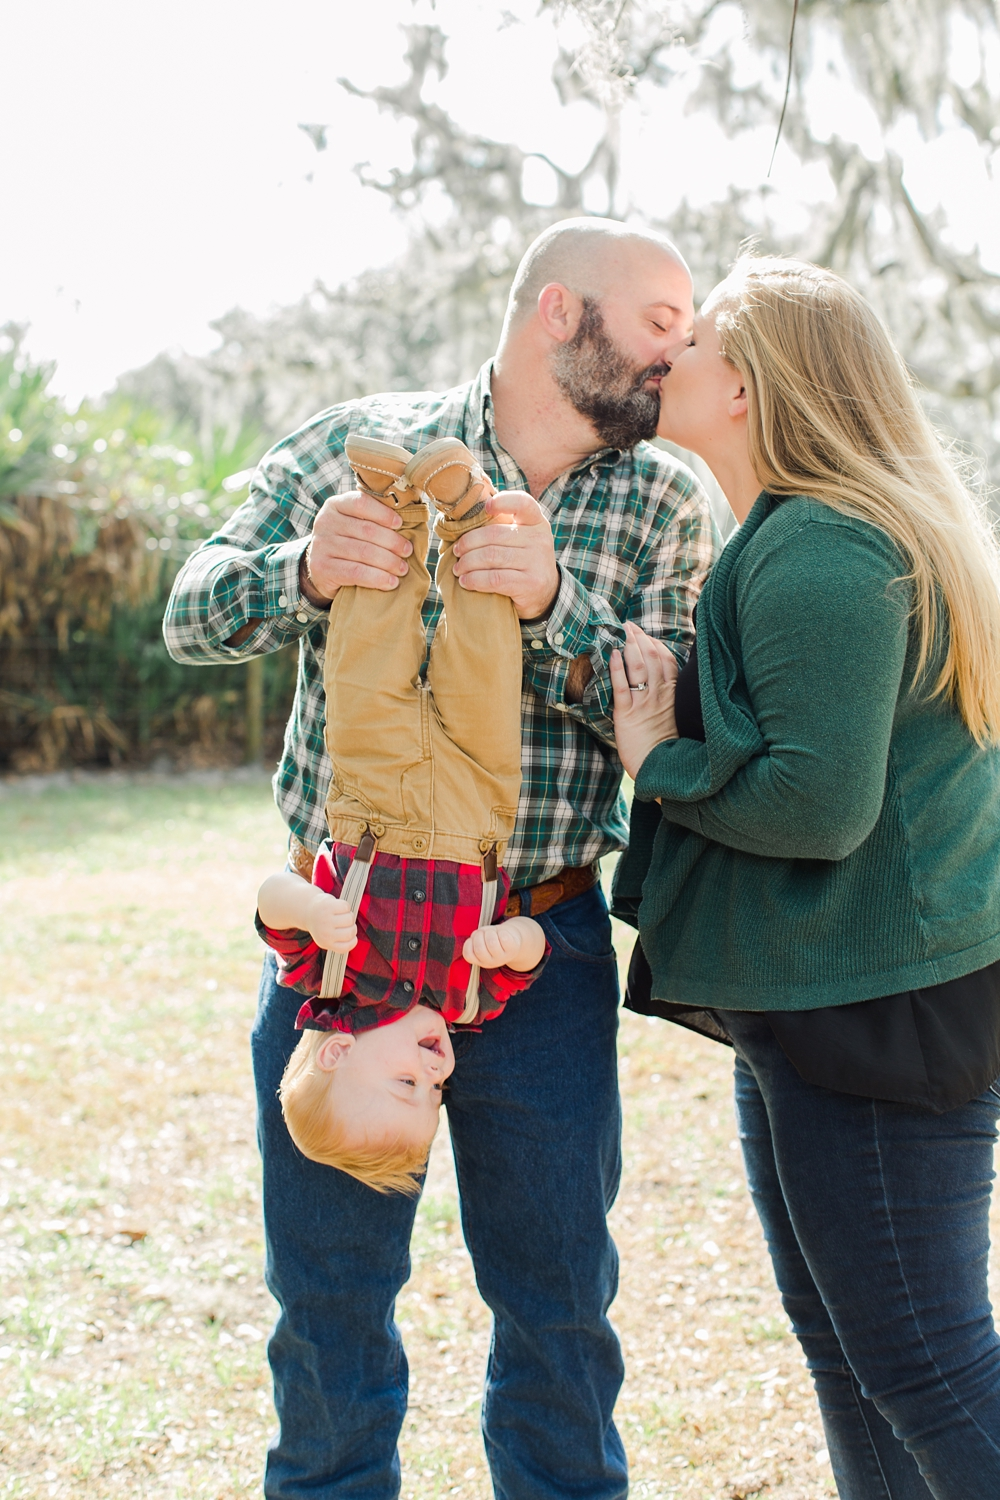 Ashley Holstein Photography | Wauchula Florida Family Session | Film Photographer Fun Family Photographer